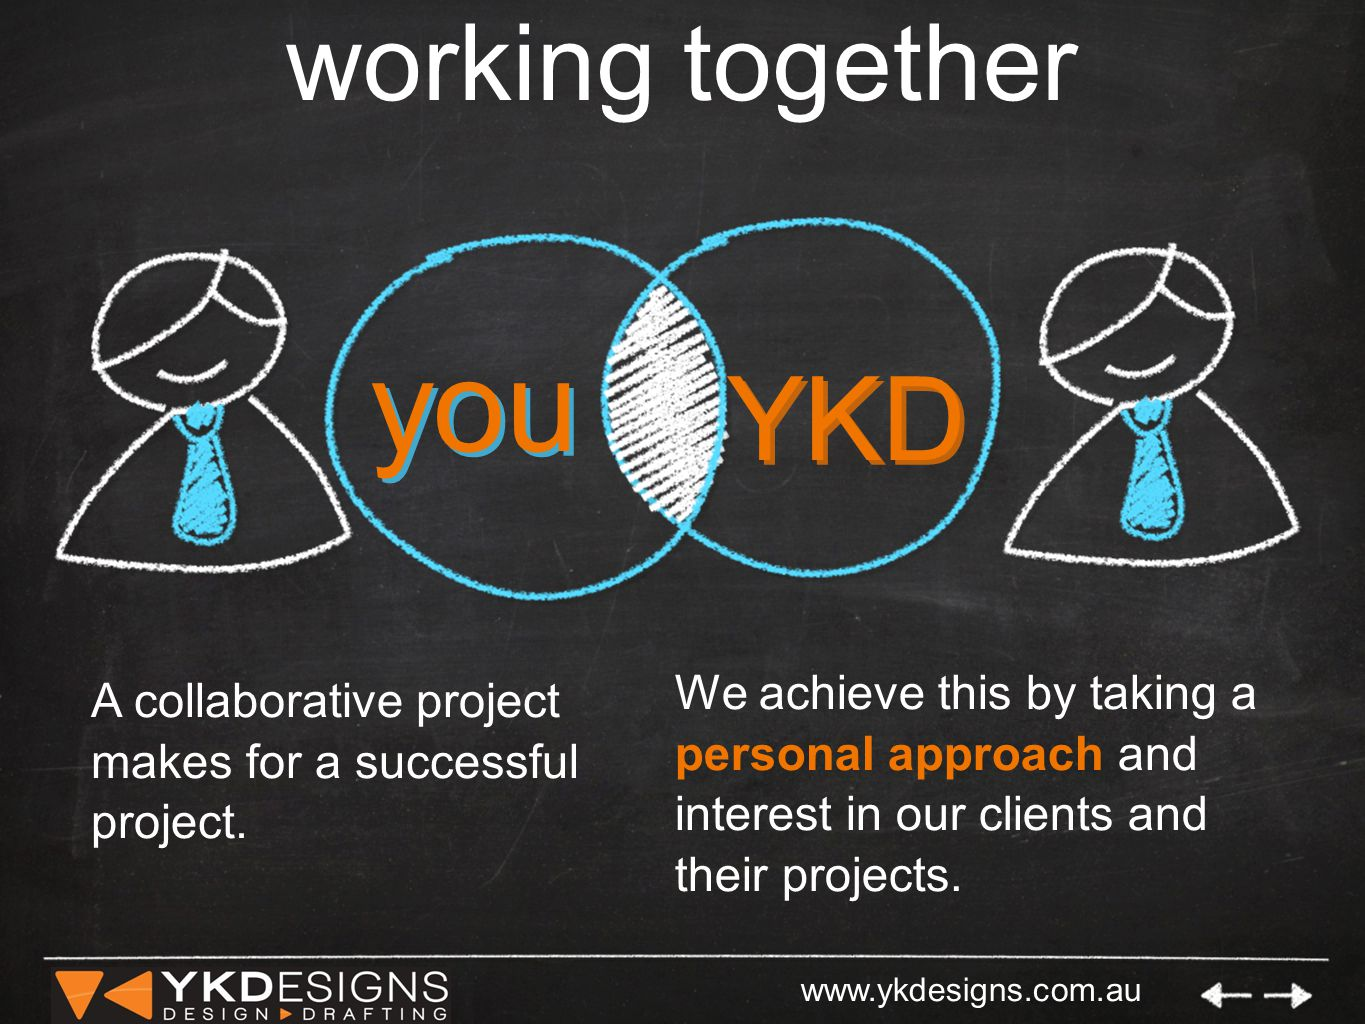 www.ykdesigns.com.au working together A collaborative project makes for a successful project.